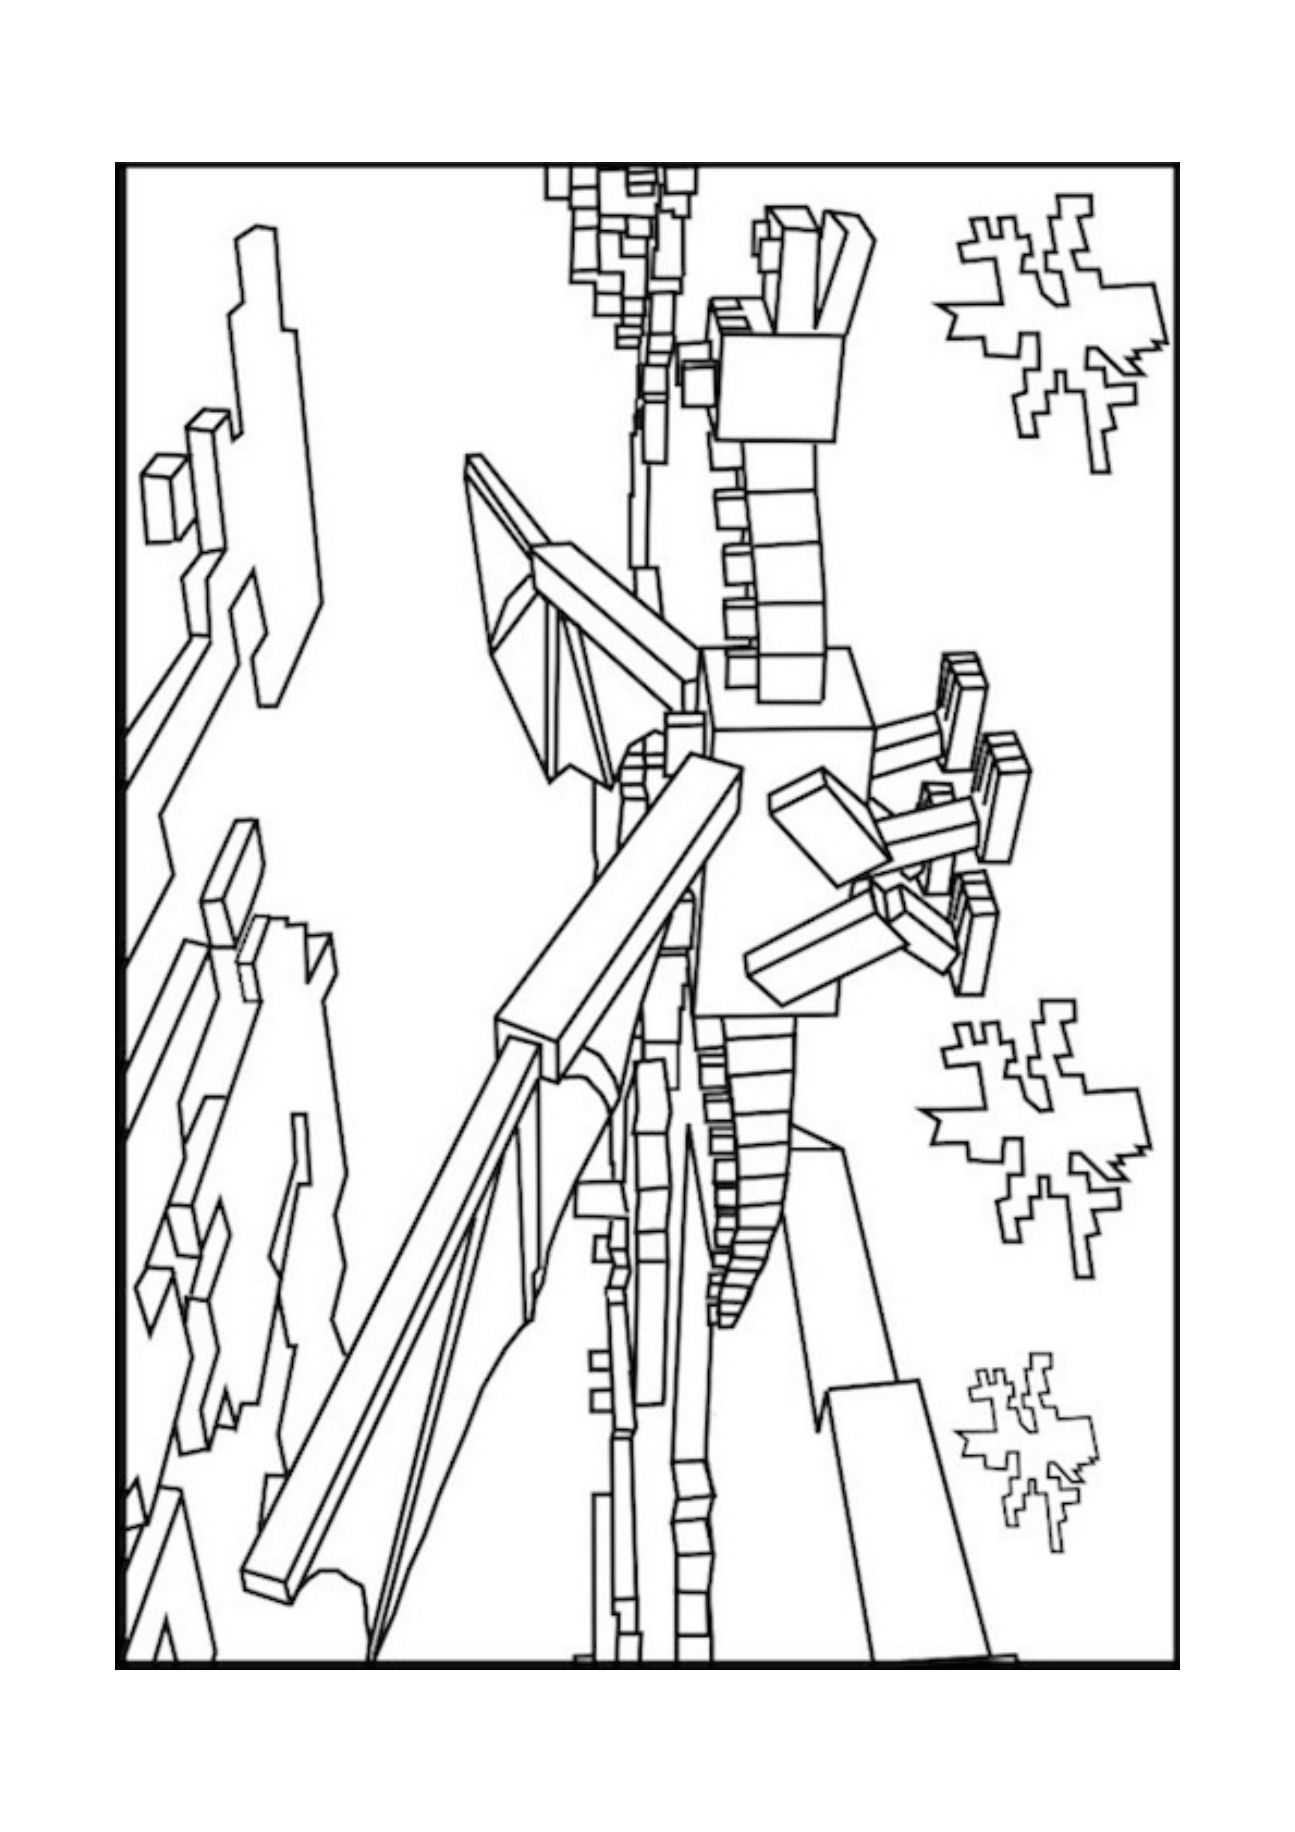 Best Minecraft Ender Dragon Coloring Pages Dragon Coloring Page Minecraft Coloring Pages Coloring Pages For Kids